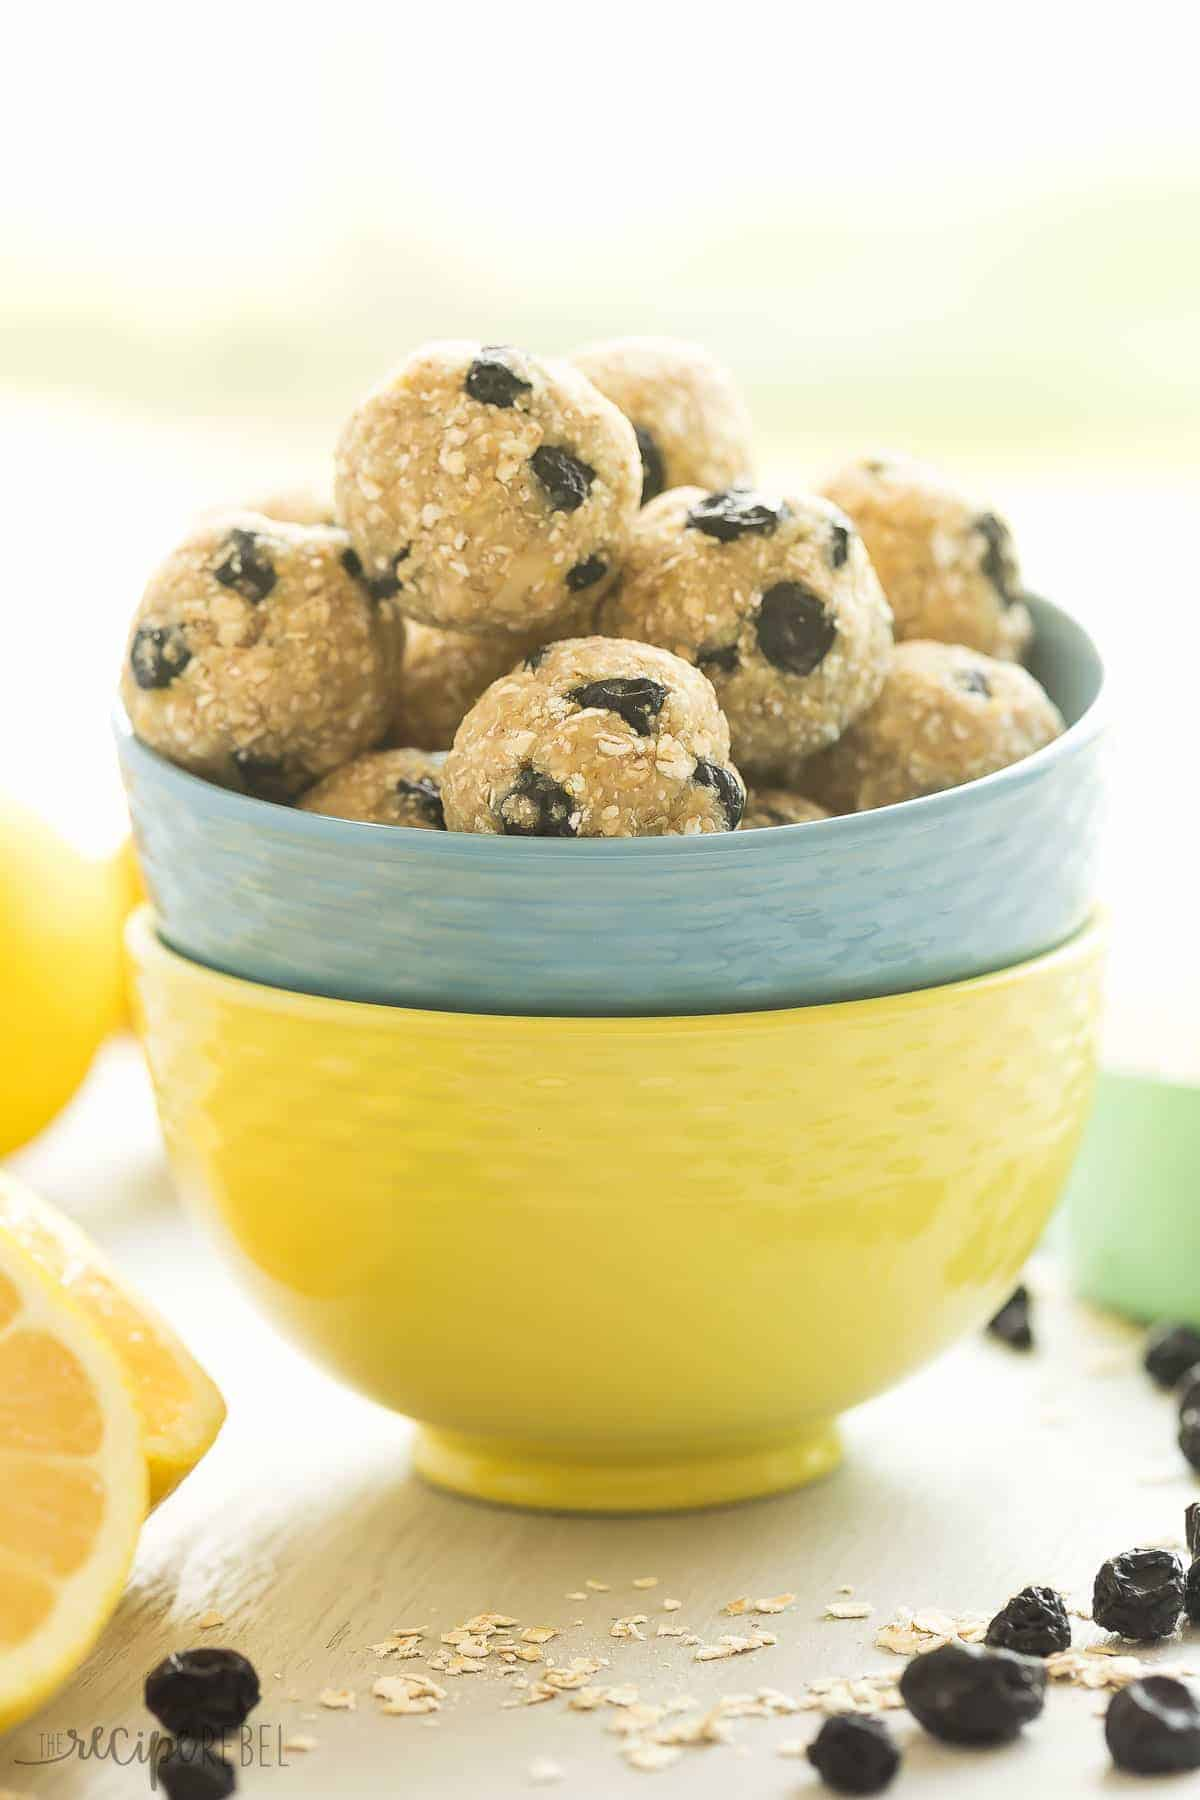 These Lemon Blueberry Energy Bites are an easy, no bake snack that's perfect for back to school or summer road trips! Just a few ingredients and they're gluten free with paleo and vegan options.